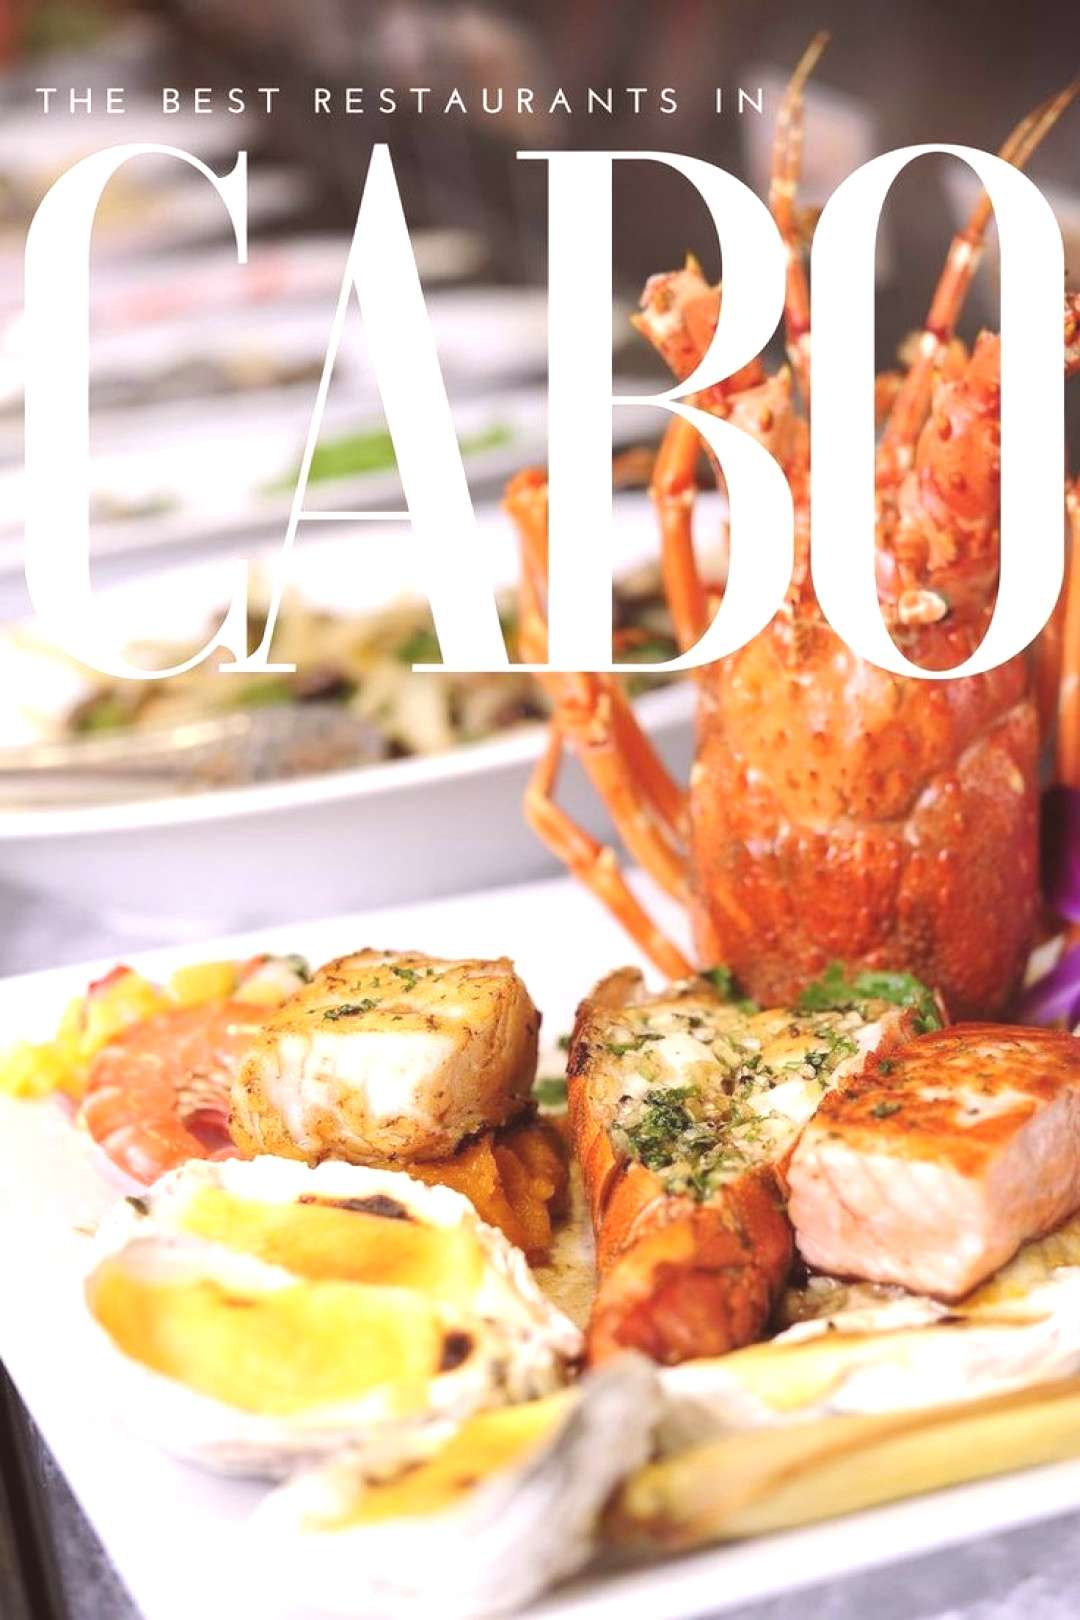 When it comes to Cabo San Lucas Mexico there are a huge range of restaurants and food to choose fro